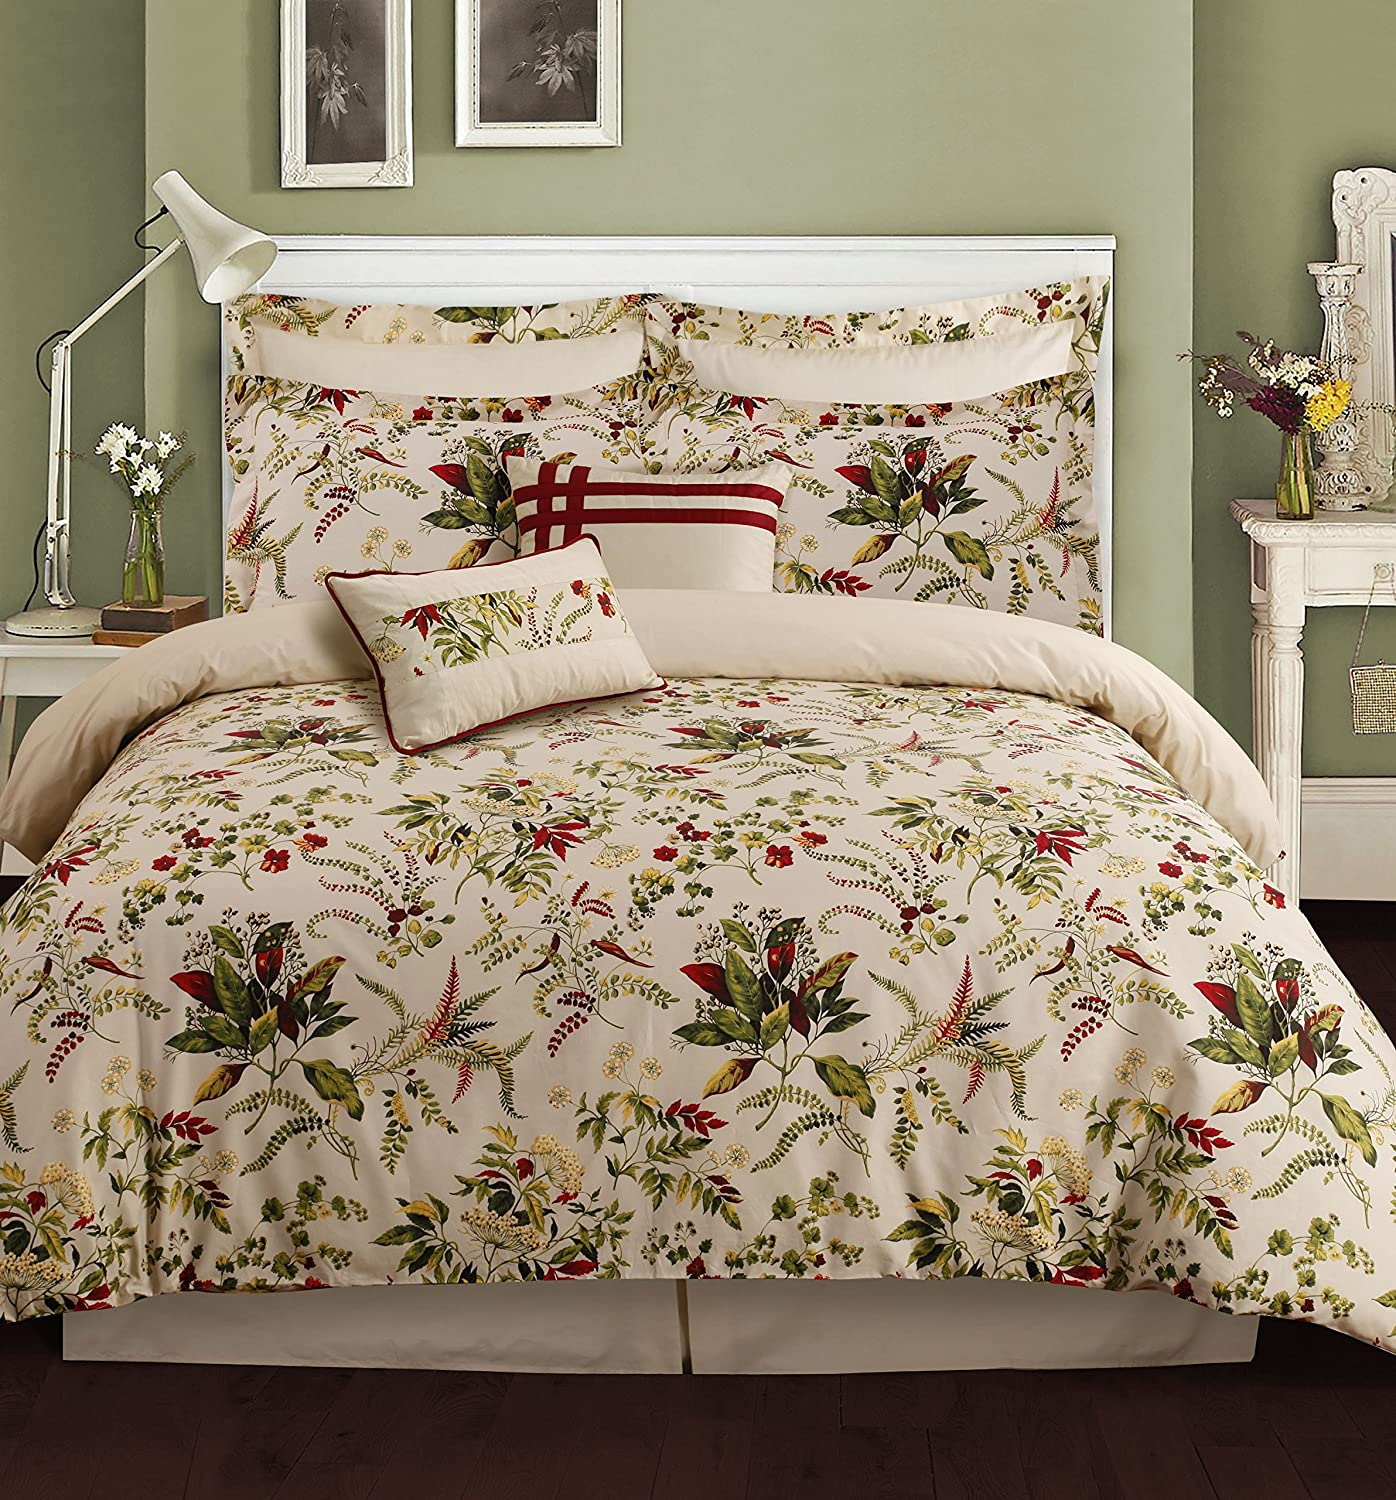 5-Piece Egyptian Cotton Percale Printed Duvet Cover Set King